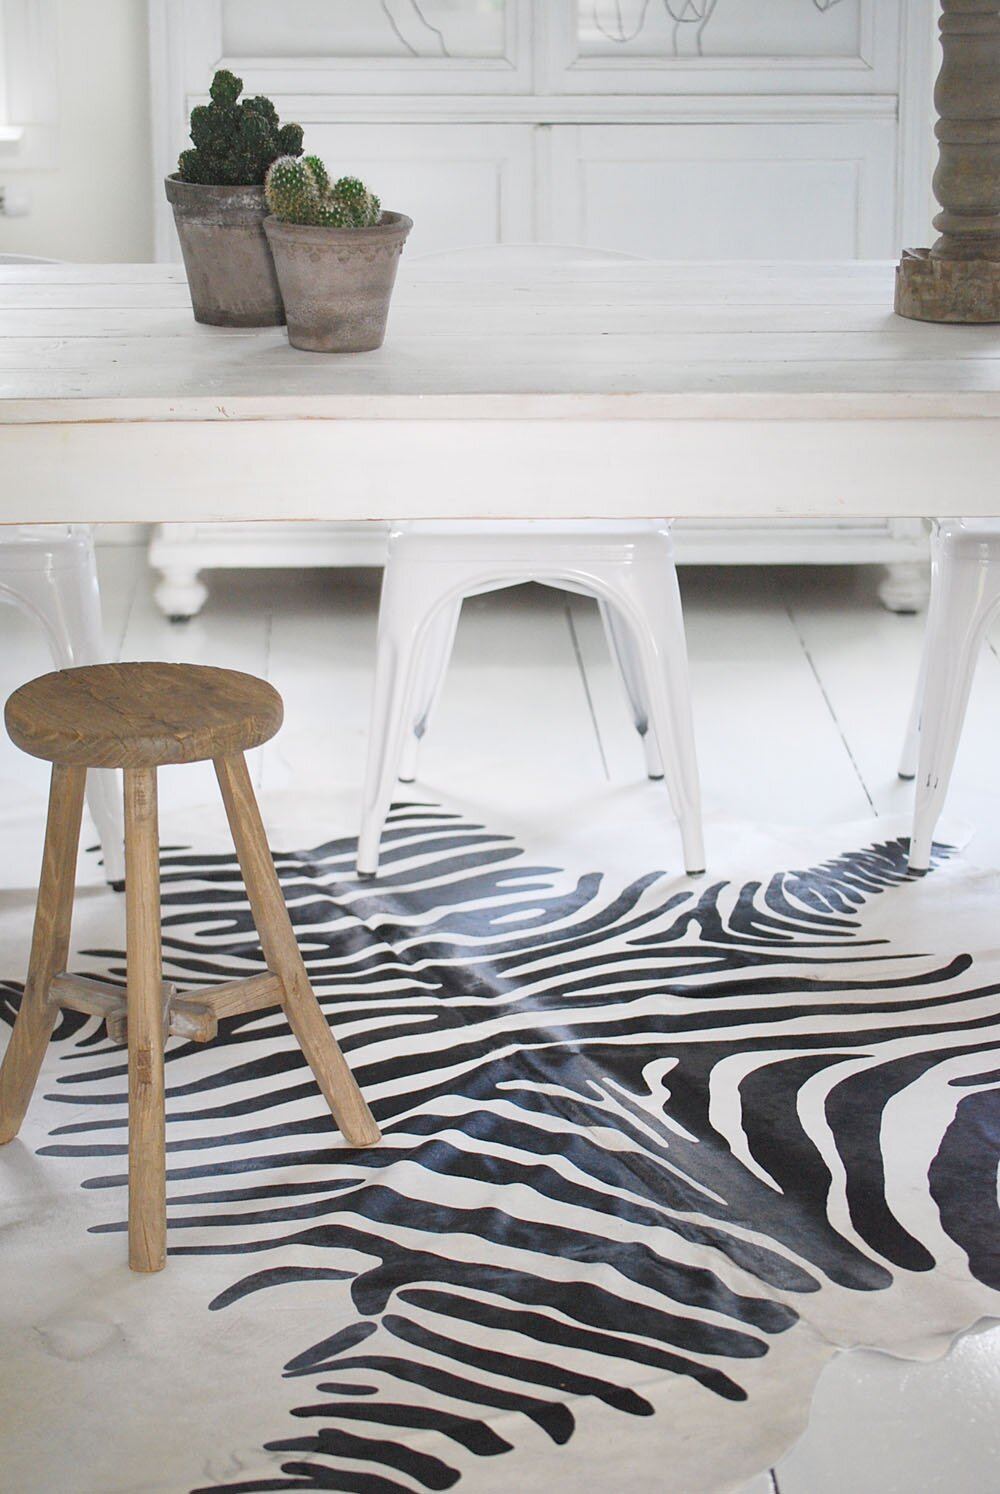 Nice zebra print decor ideas in 16 photos for Zebra decorations for home